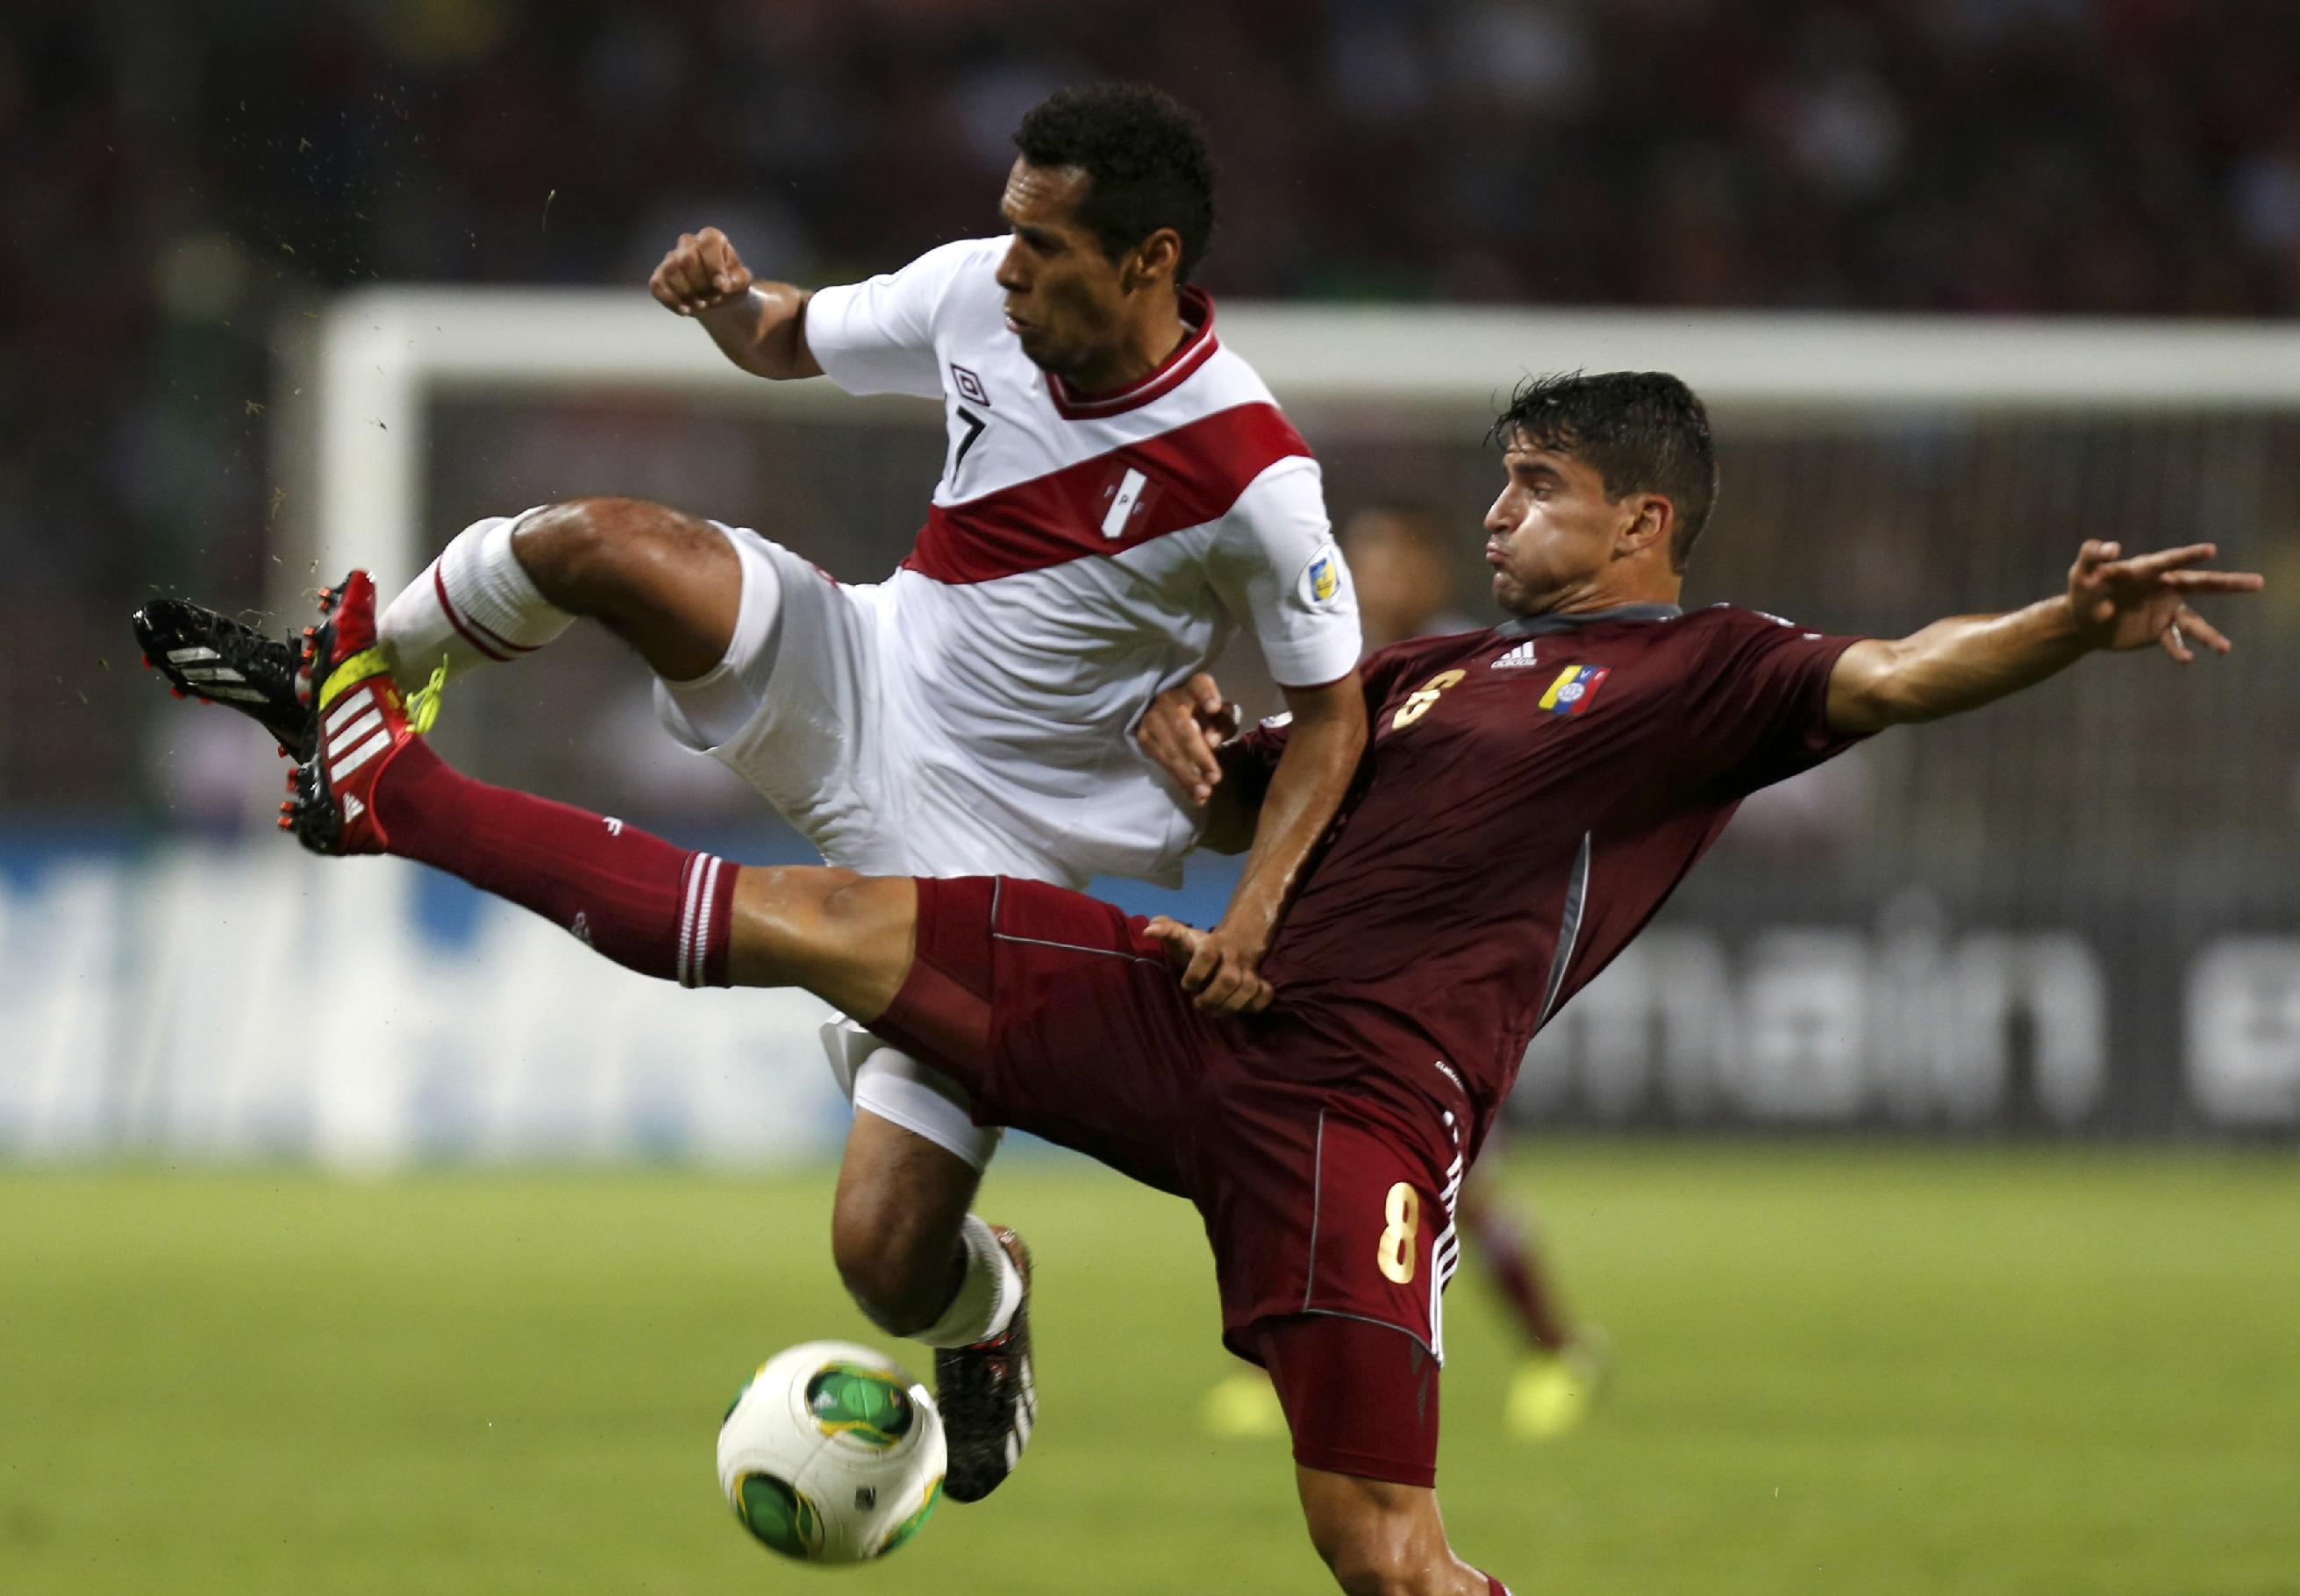 Peru's Carlos Lobaton, left, fights for the ball with Venezuela's Tomas Rincon during a World Cup 2014 qualifying soccer match in Puerto La Cruz, Venezuela, Tuesday, Sept. 10, 2013